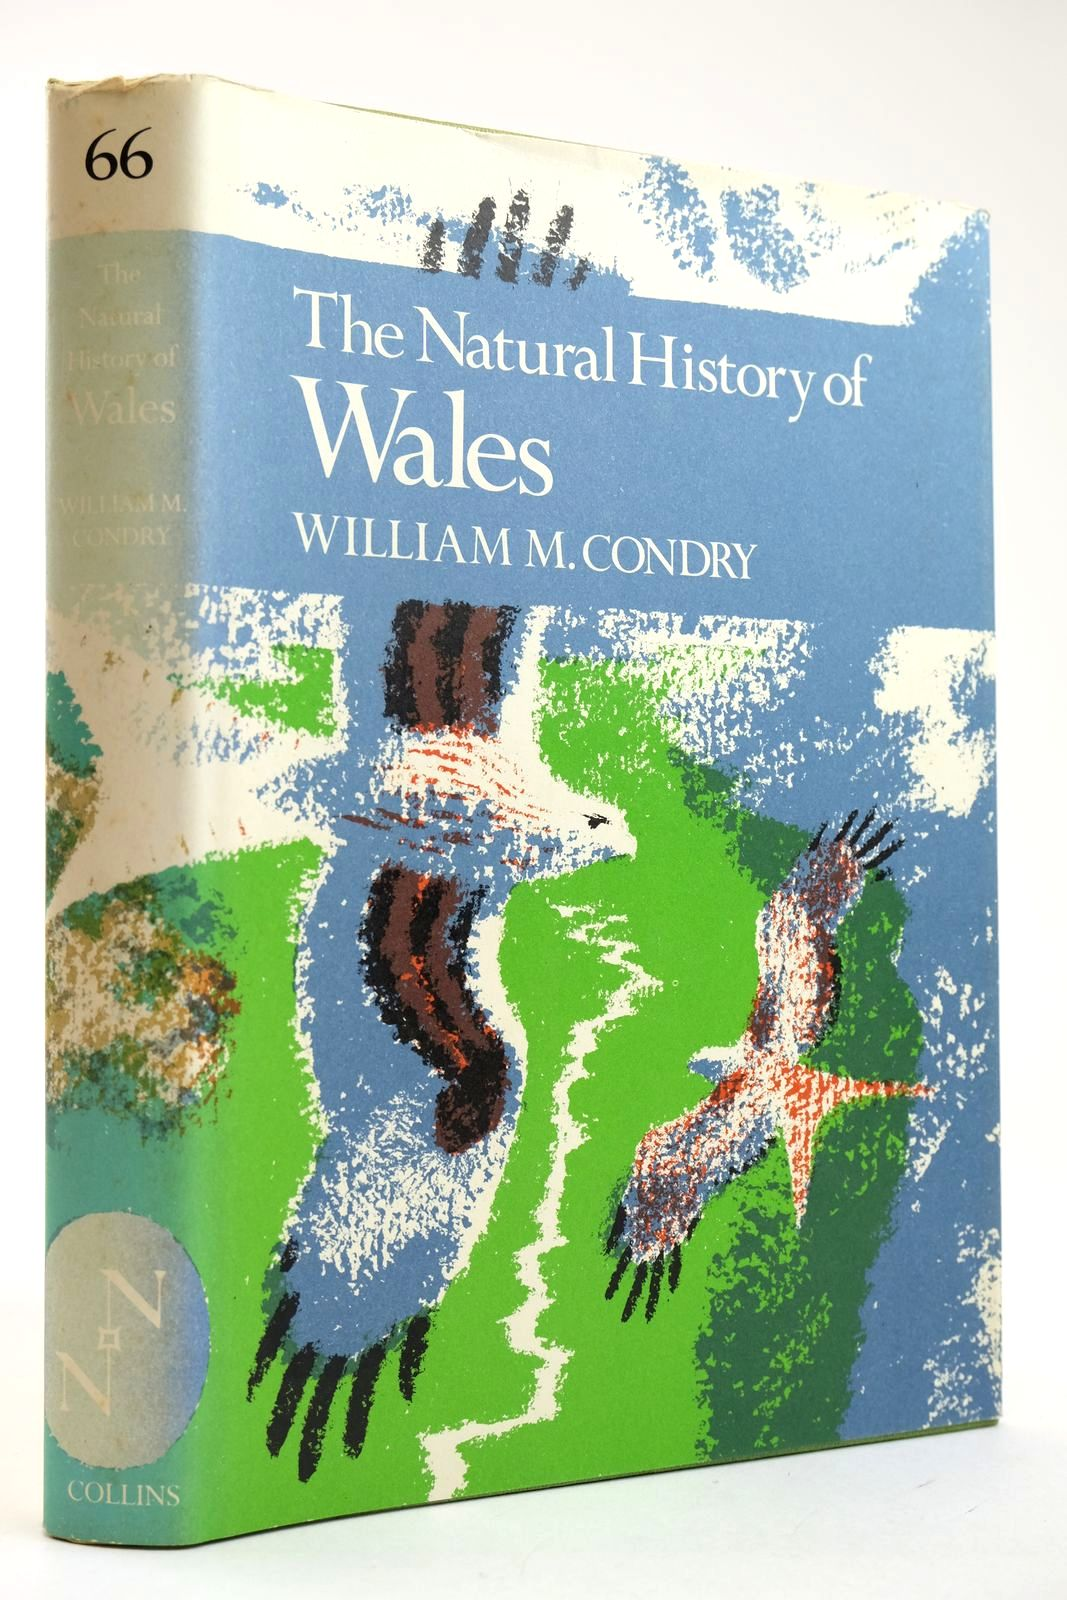 Photo of THE NATURAL HISTORY OF WALES (NN 66)